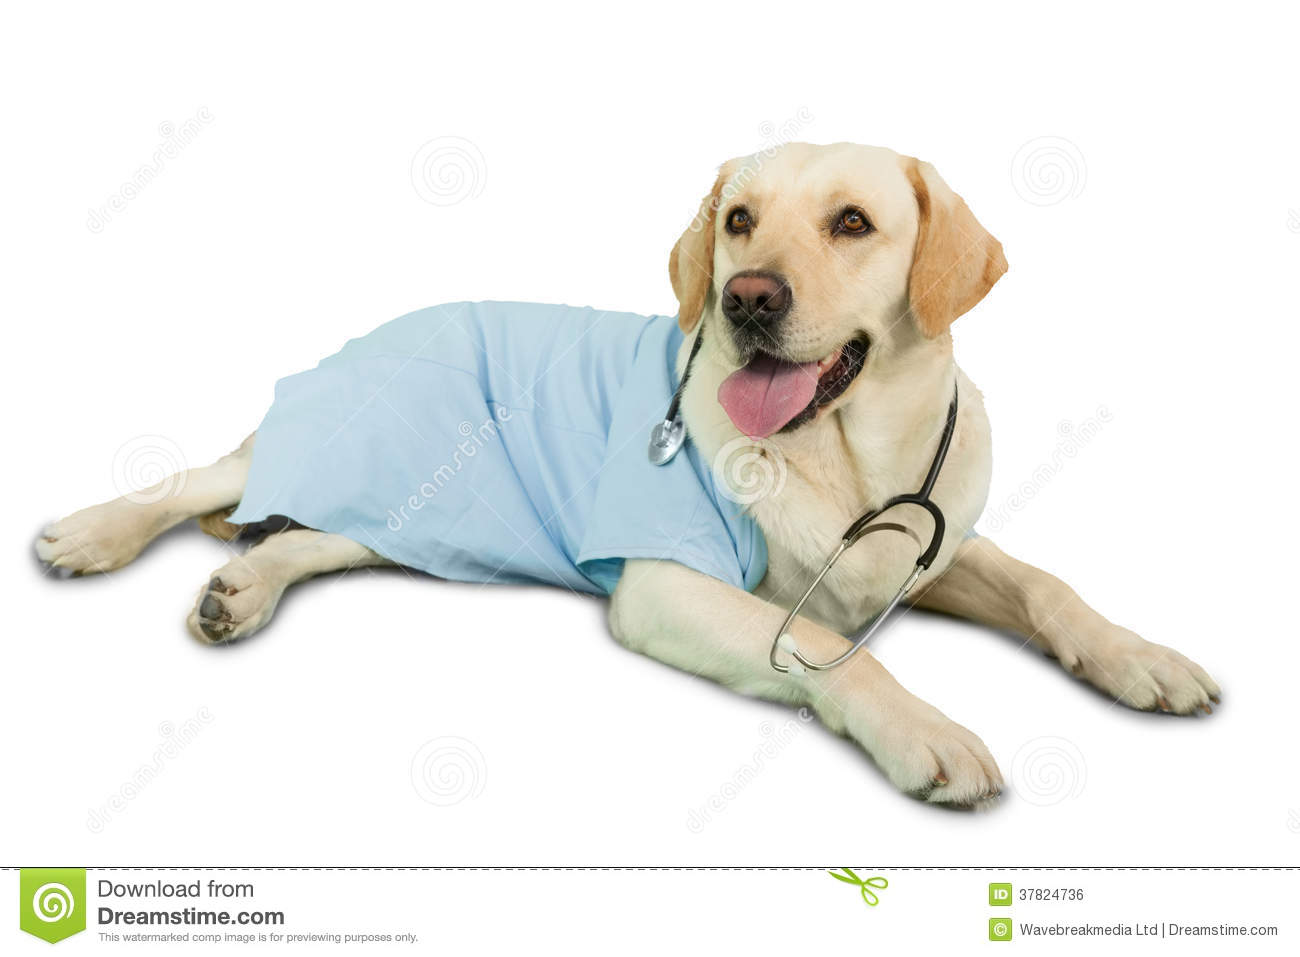 Cute Indian Girl Child Wallpaper Cute Labrador Dog Lying On Floor Wearing Scrubs And